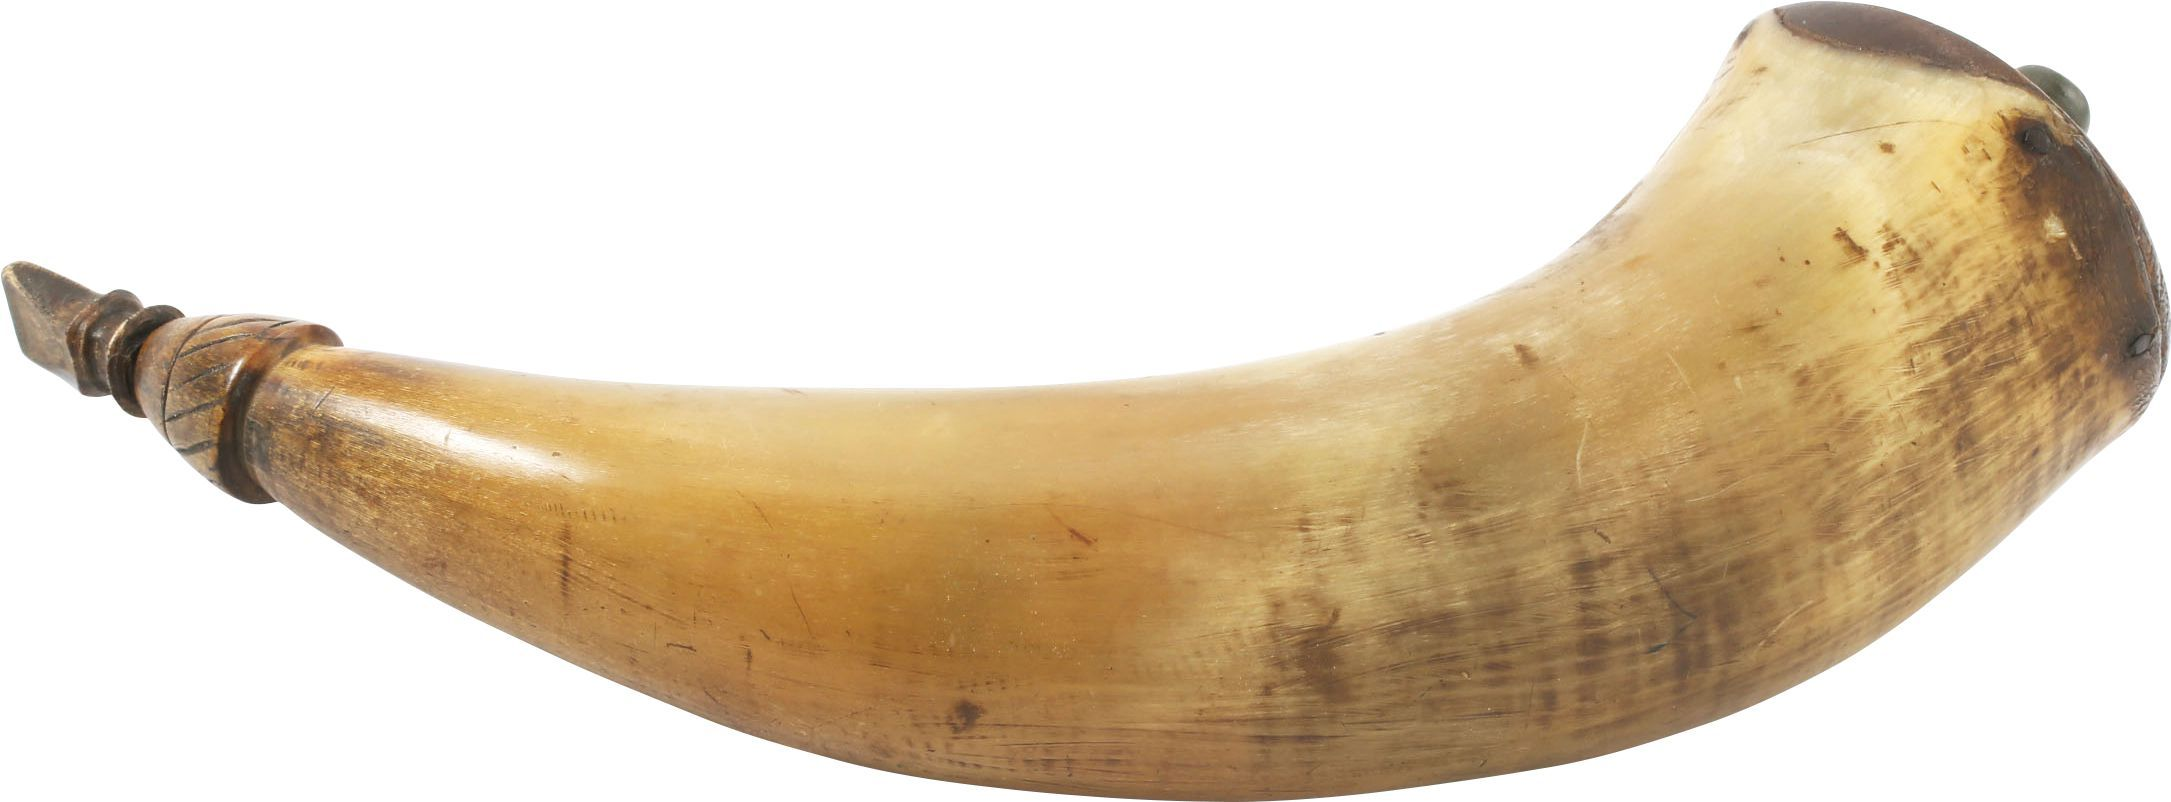 Good Revolutionary War Powder Horn - Product